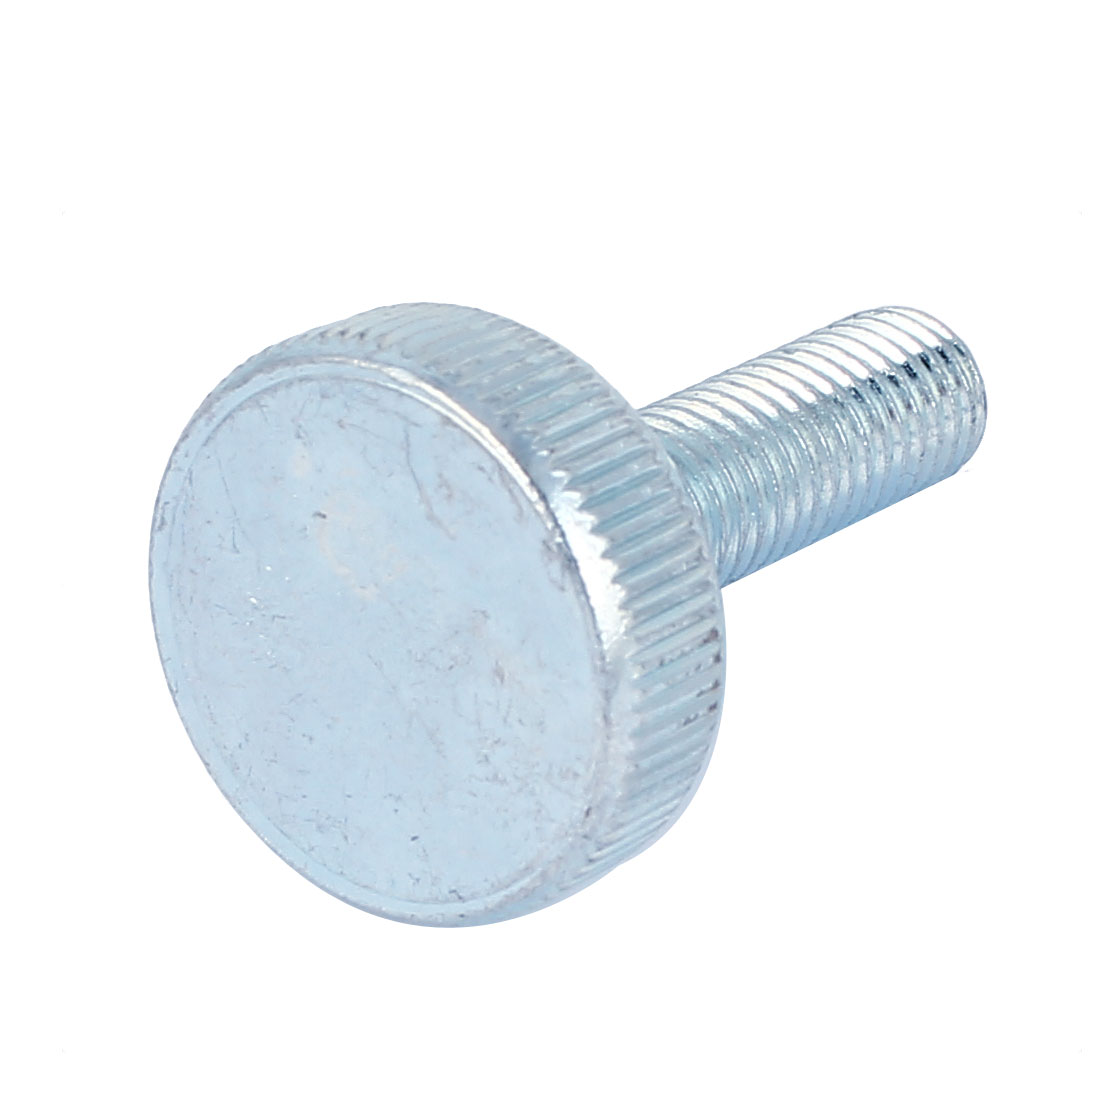 M10x35mm Thread Carbon Steel Knurled Round Head Thumb Screw Silver Blue